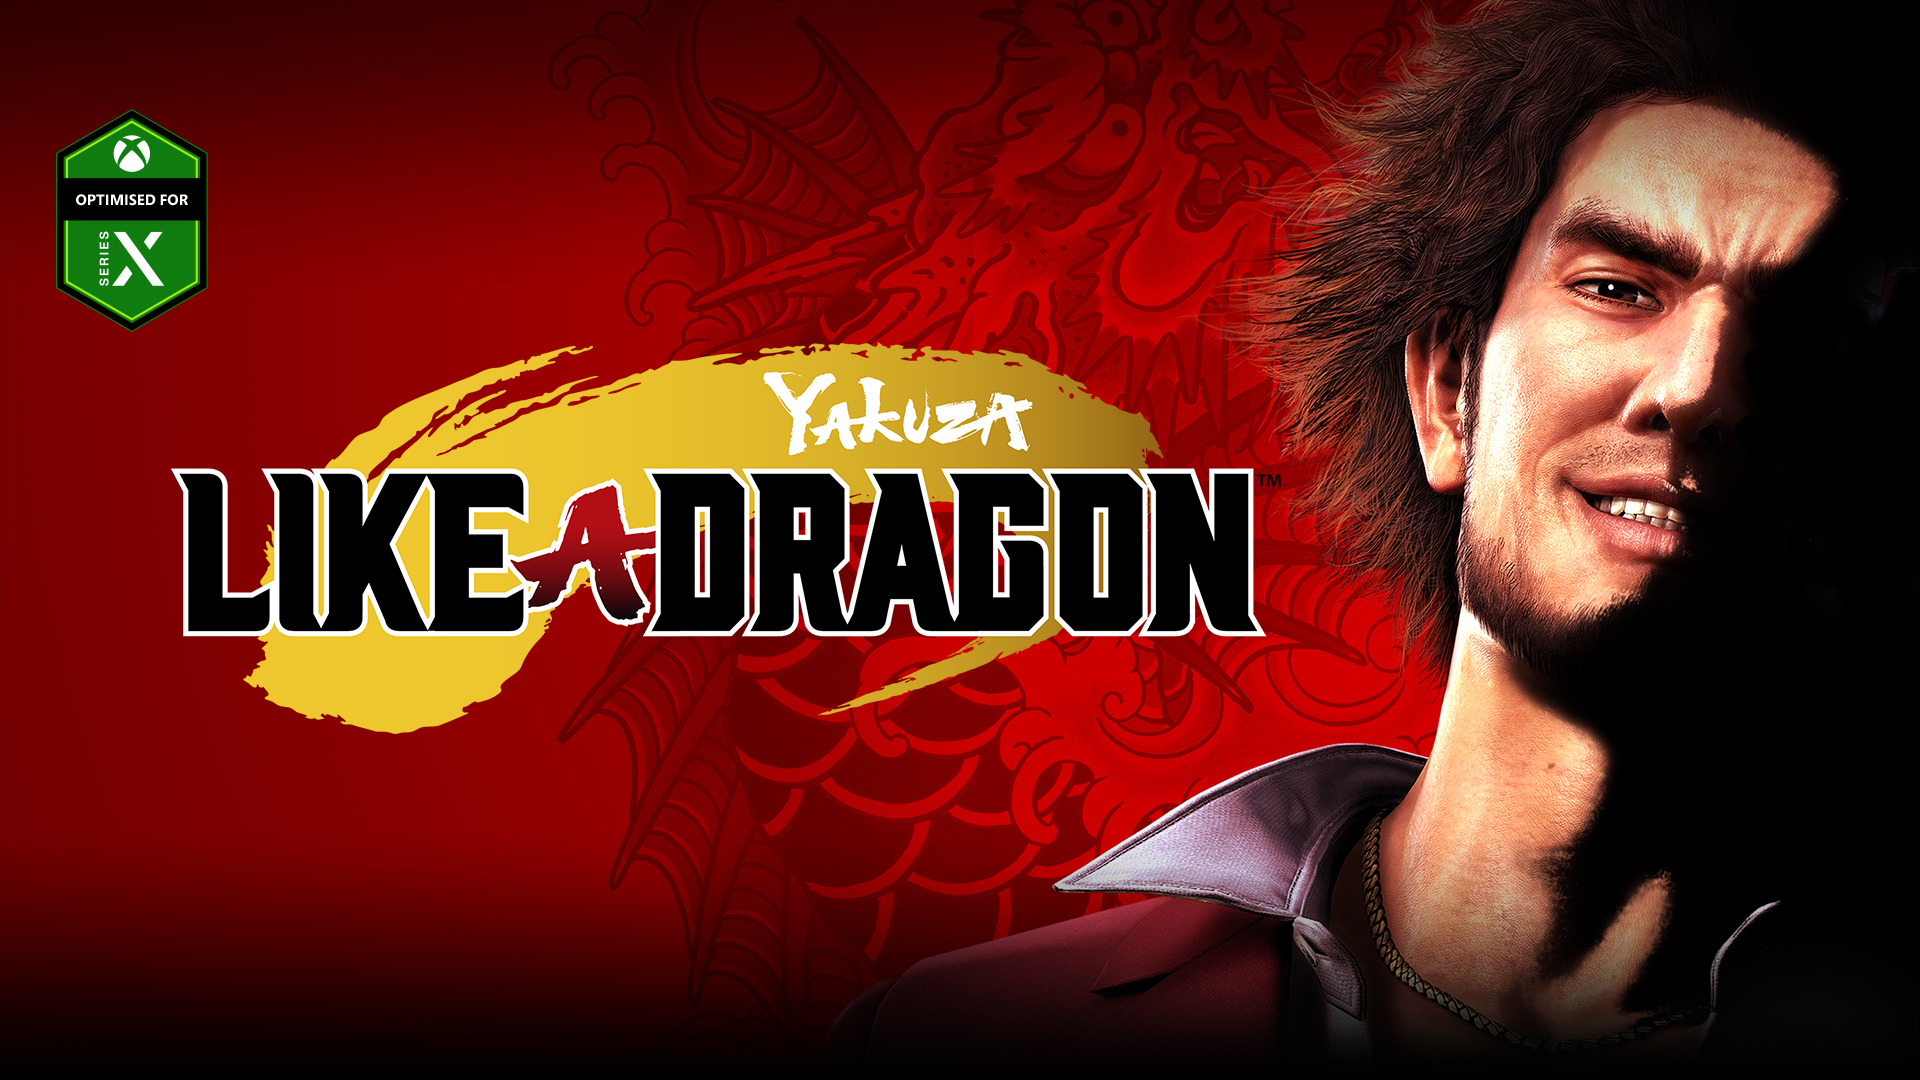 Yakuza Like a Dragon, Ichiban smiles against a red dragon background.